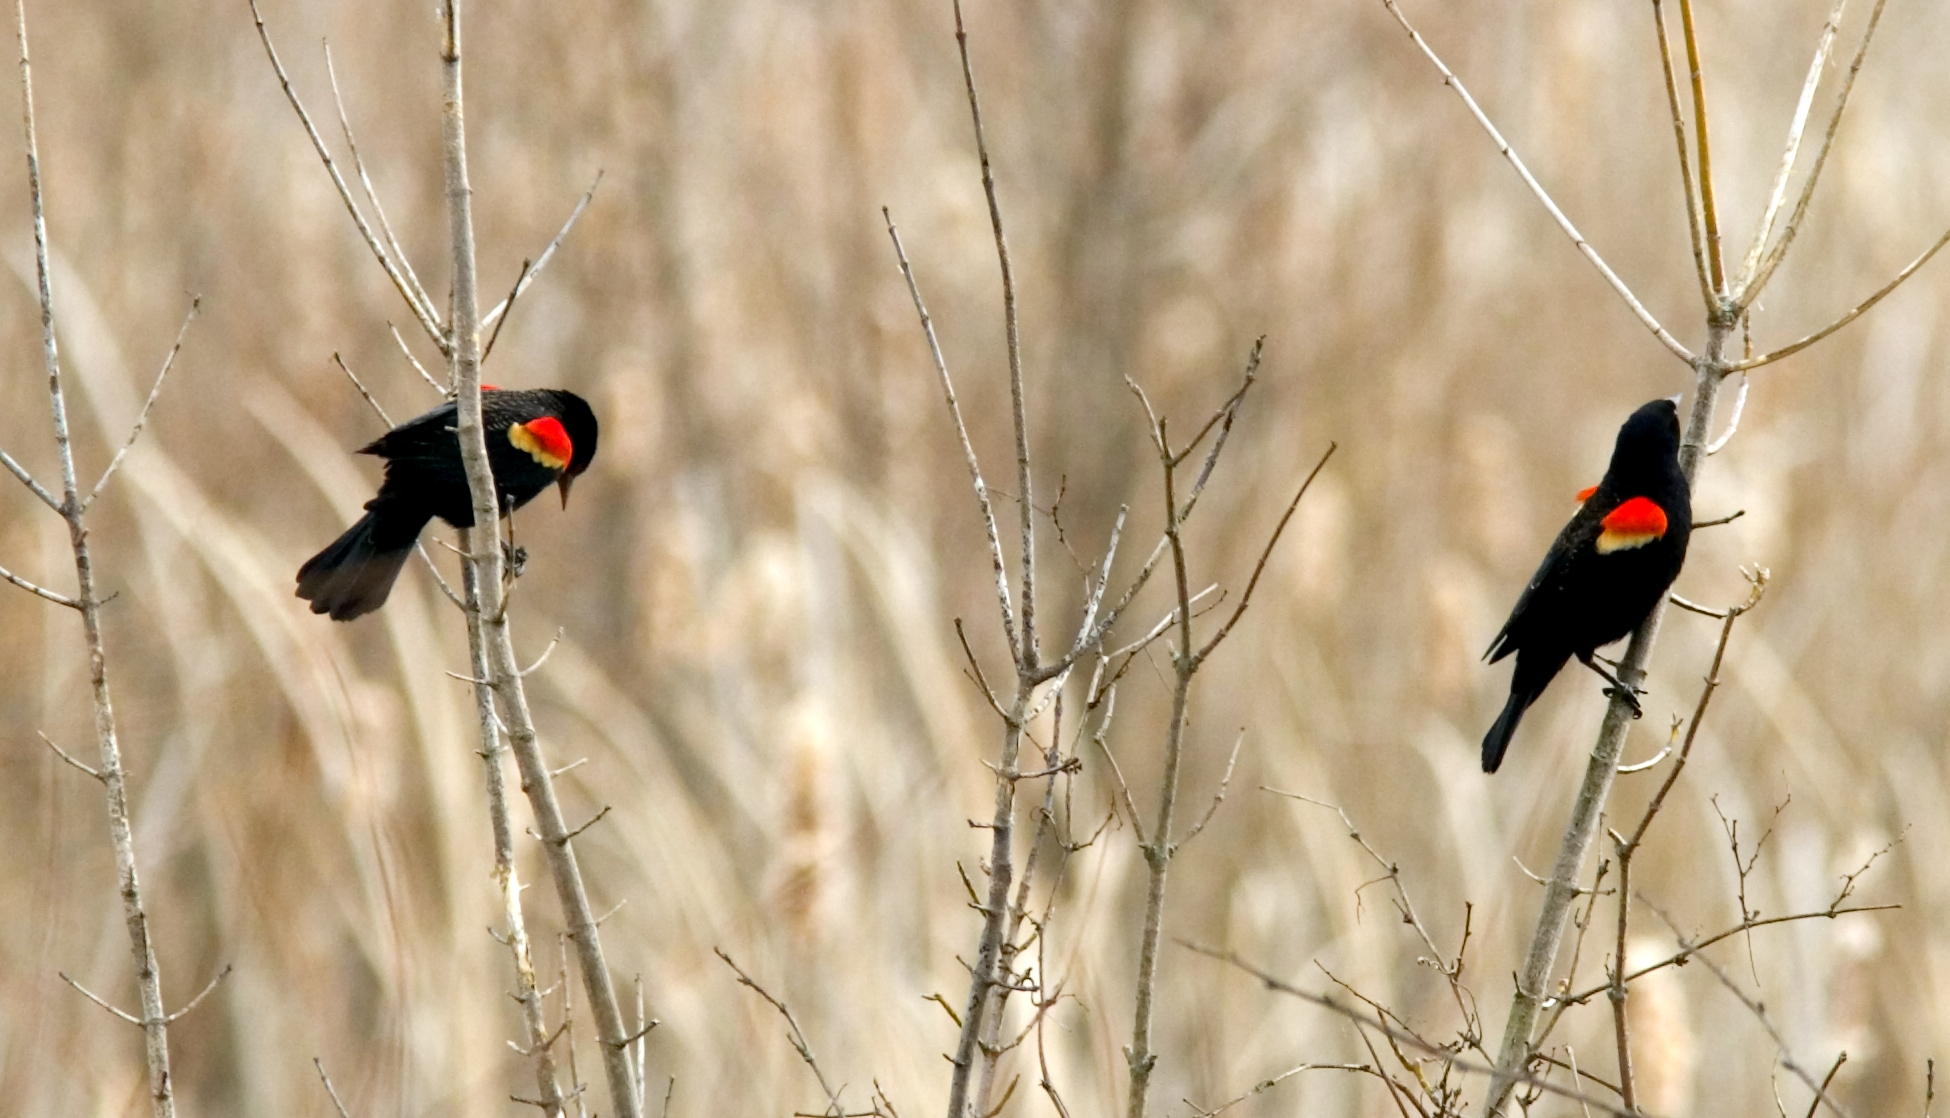 Ohio Bird Photo Collection: Red Winged Male Blackbirds